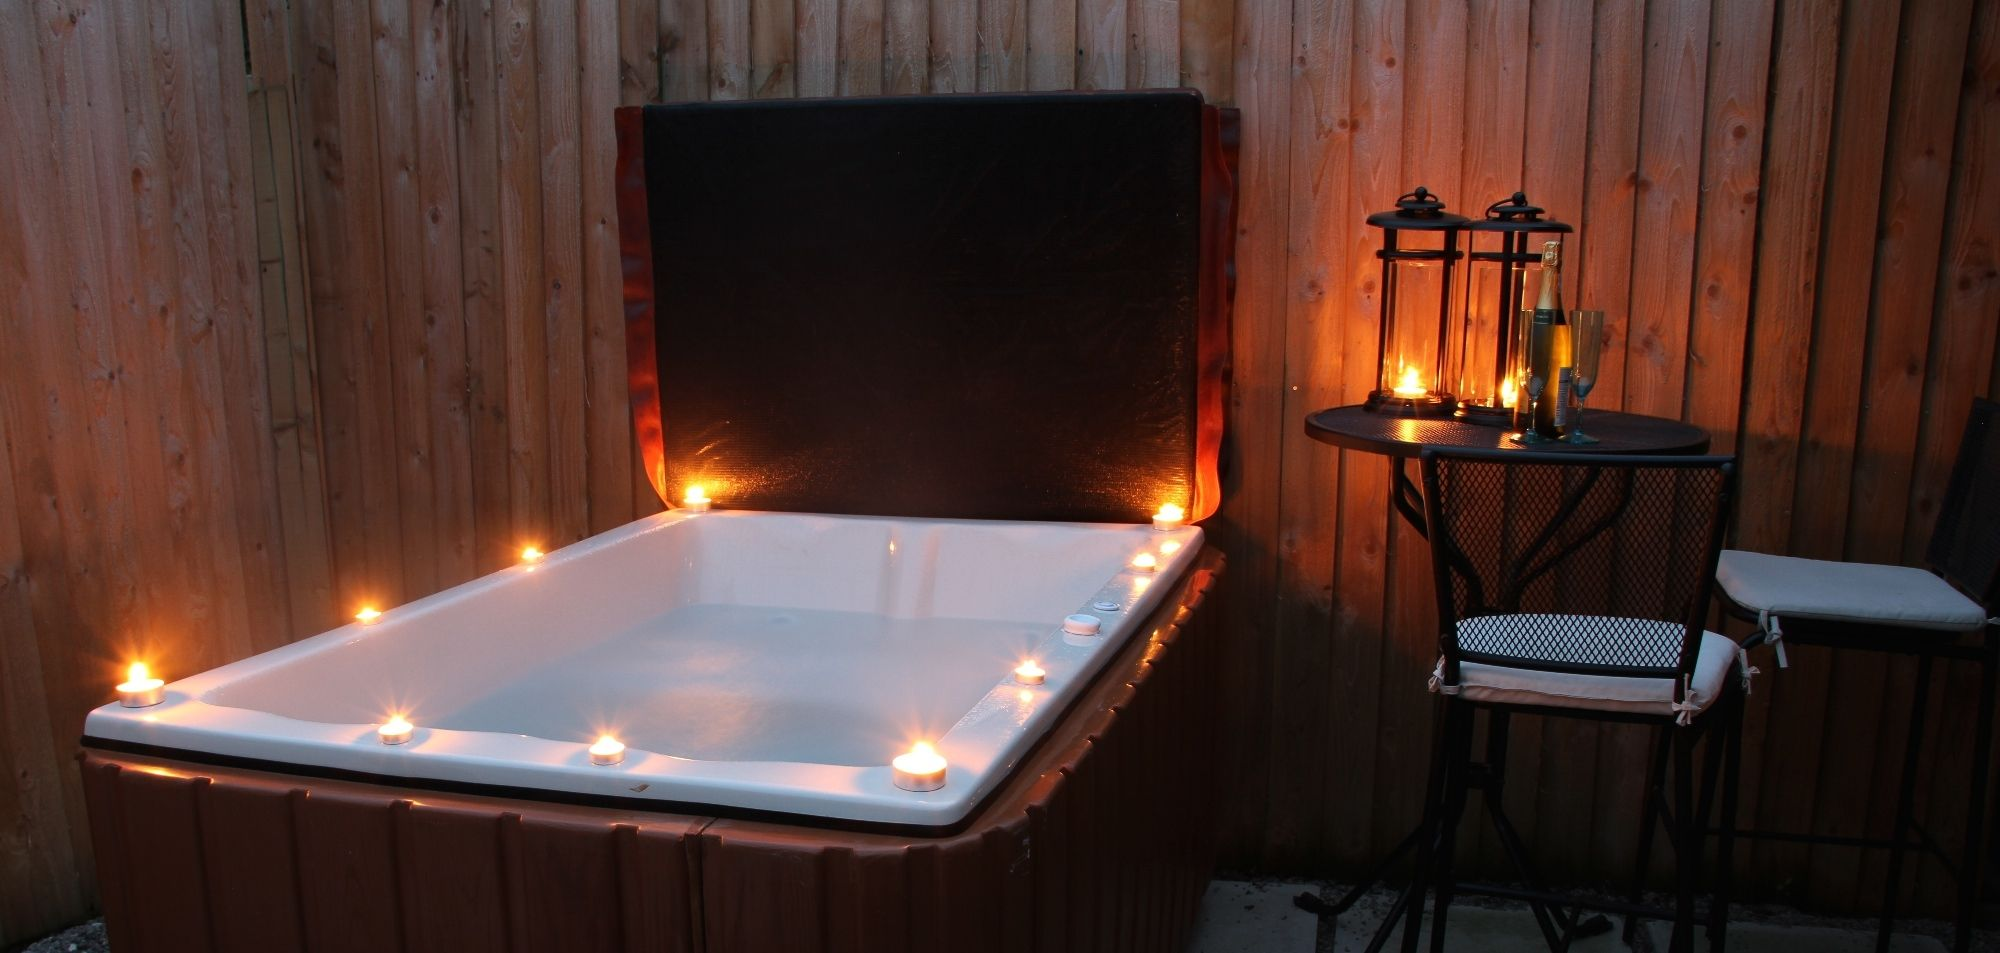 Hot Tub Safari At Pentre Mawr Room For Romance Luxury Hotel Weekend